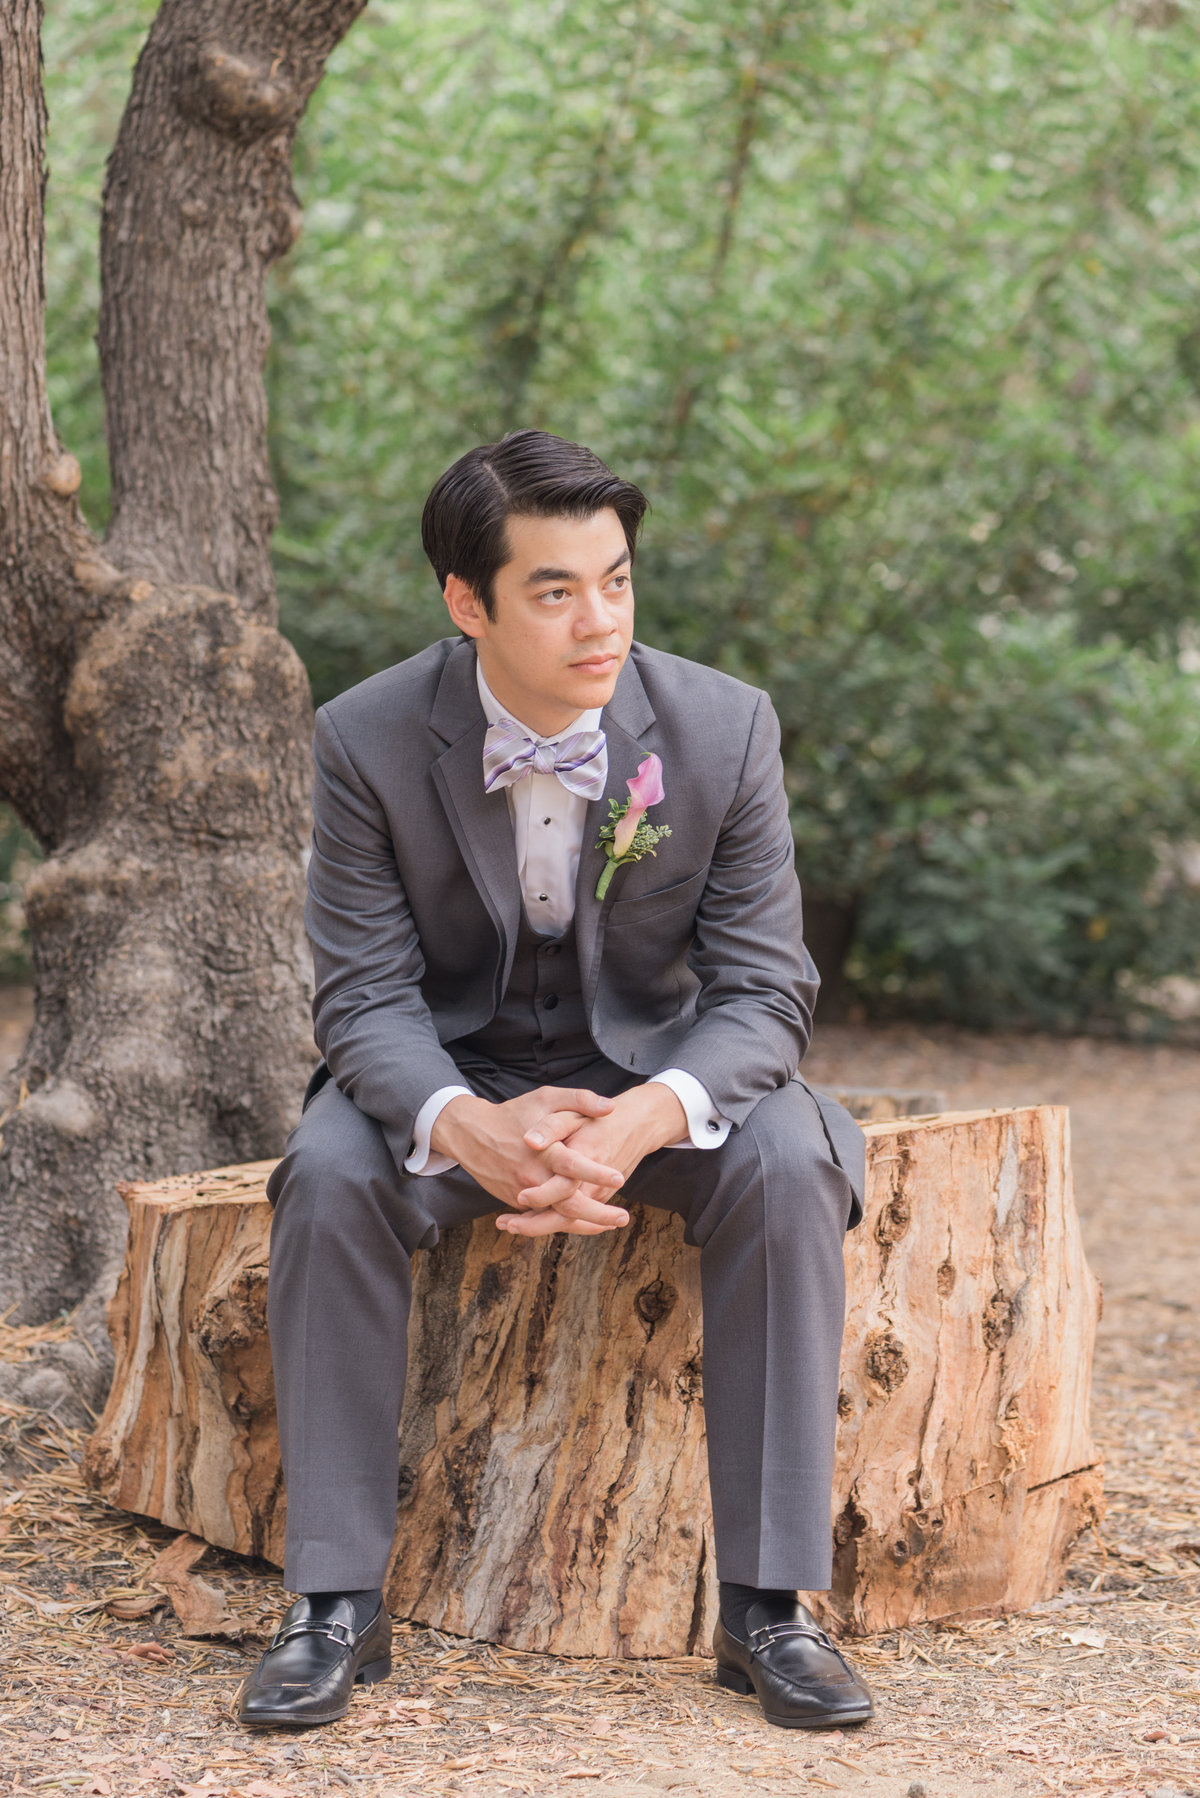 occidental-college-wedding-photos-38